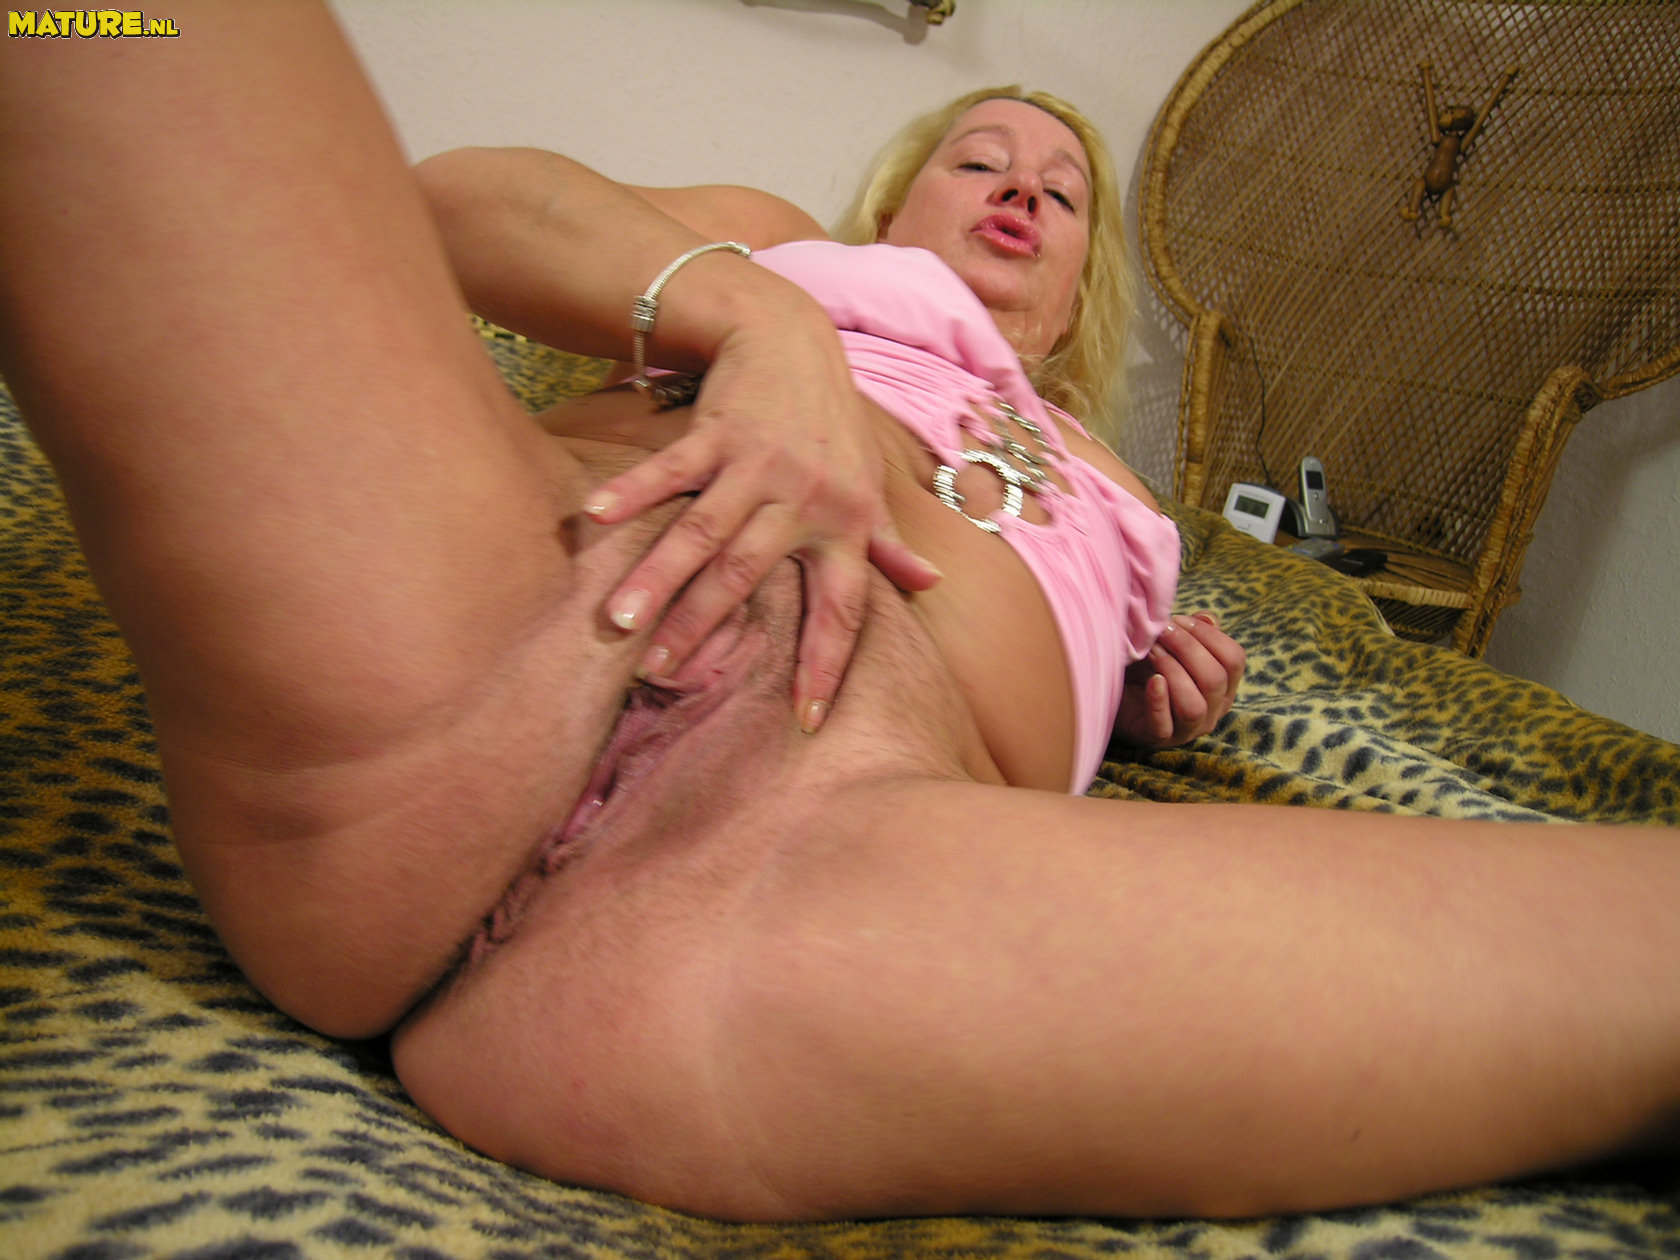 Crazy round mature hoe playing with her puss